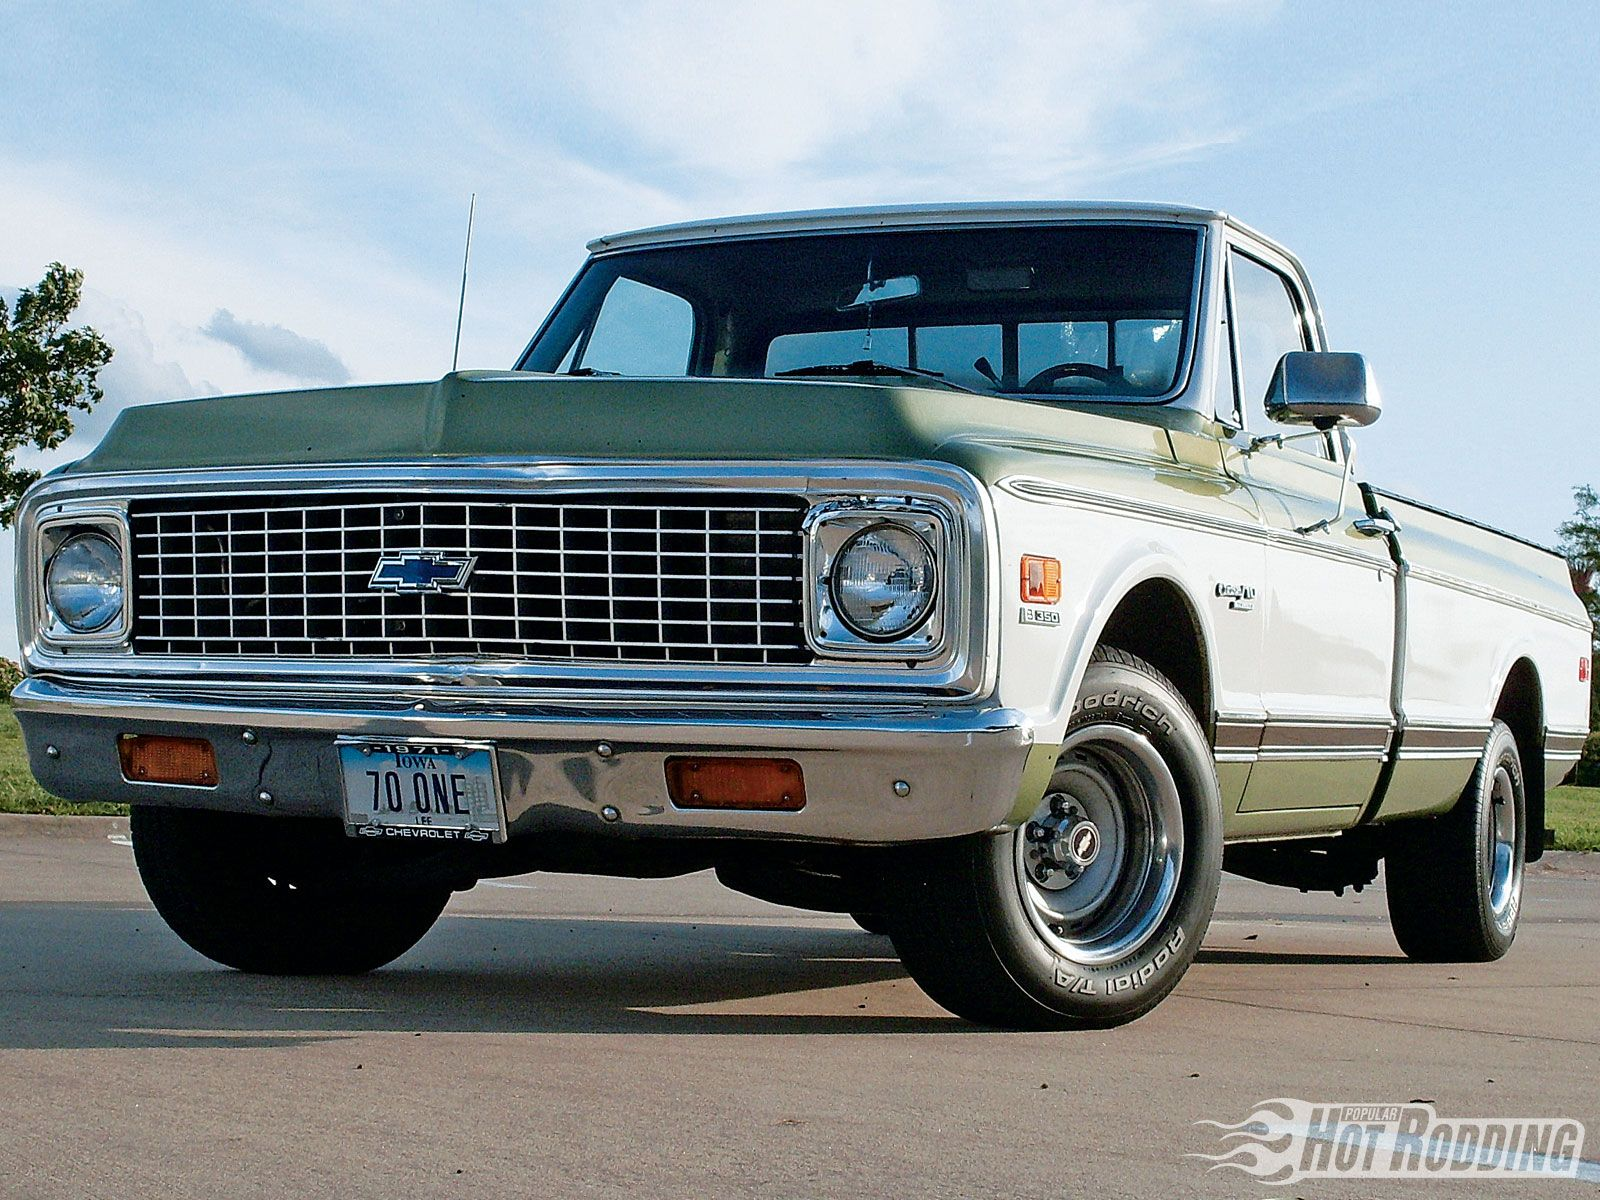 small resolution of 1971 chevy pickup what were they thinking with that green color